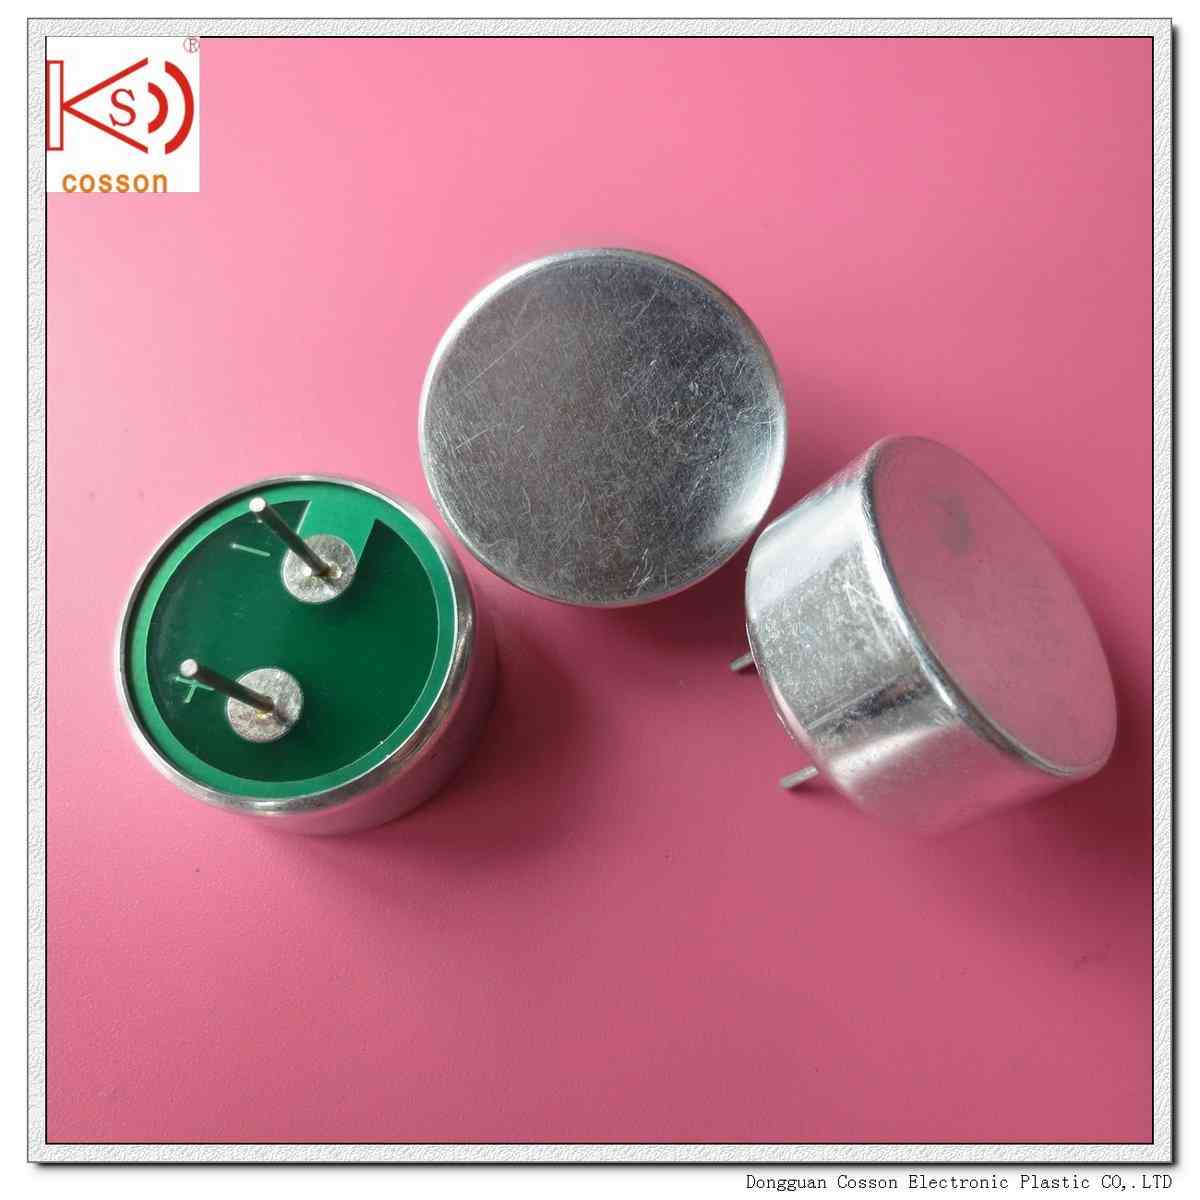 English 25mm waterproof ultrasonic transducer